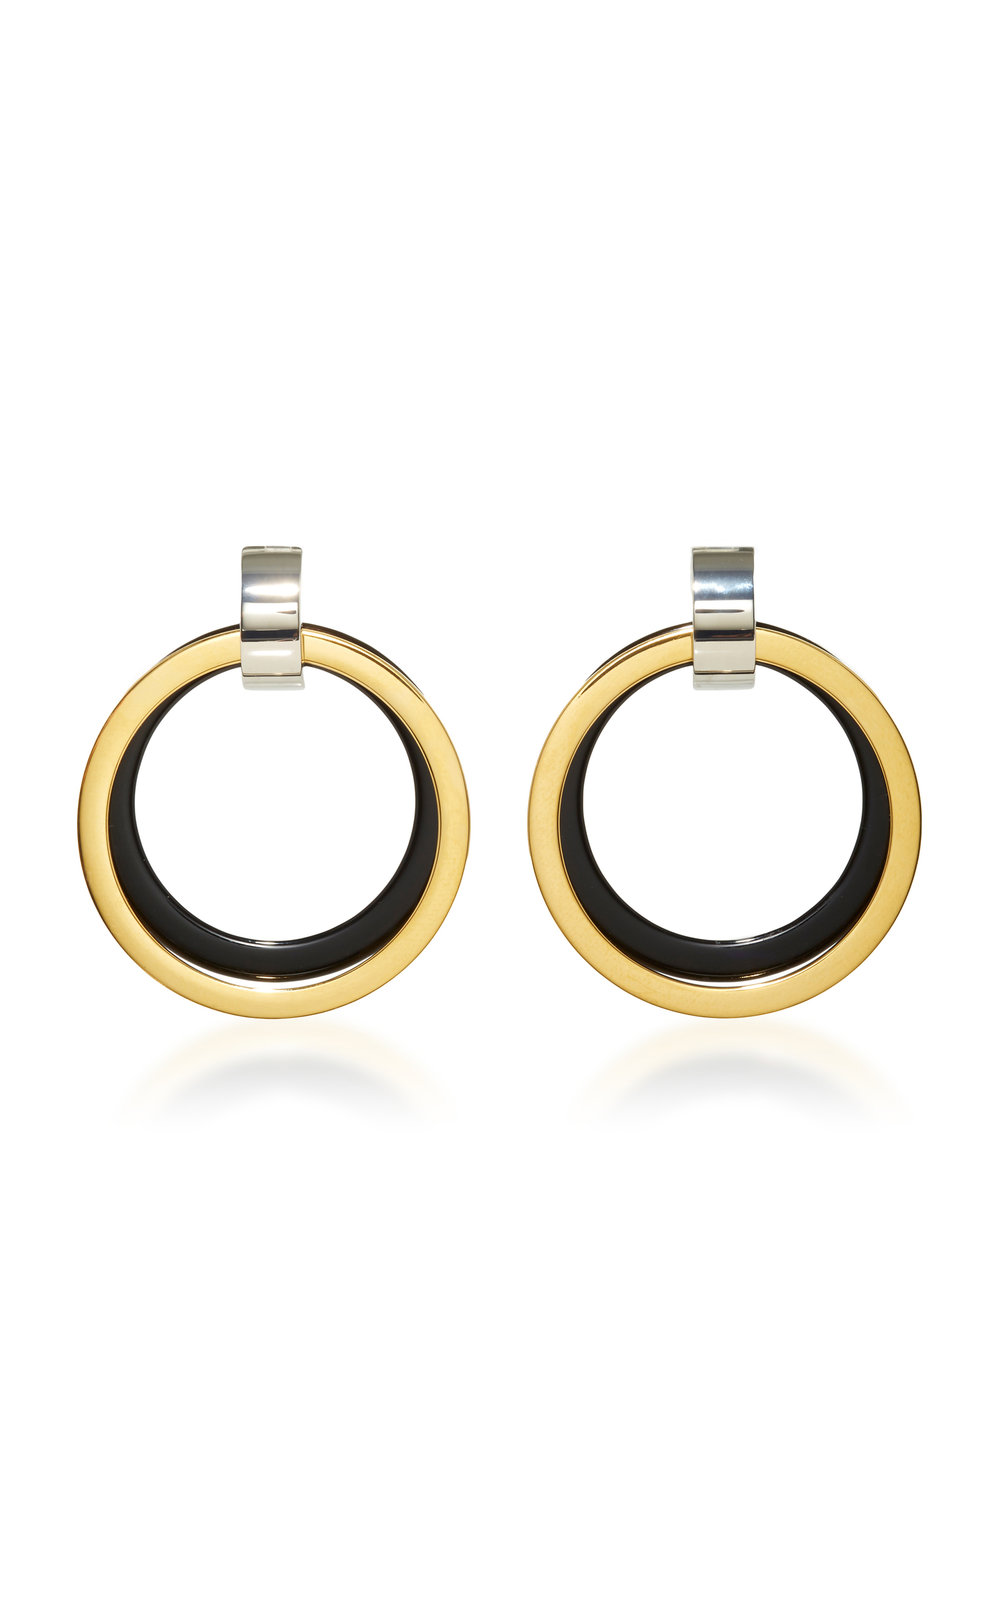 marni earrings.jpg